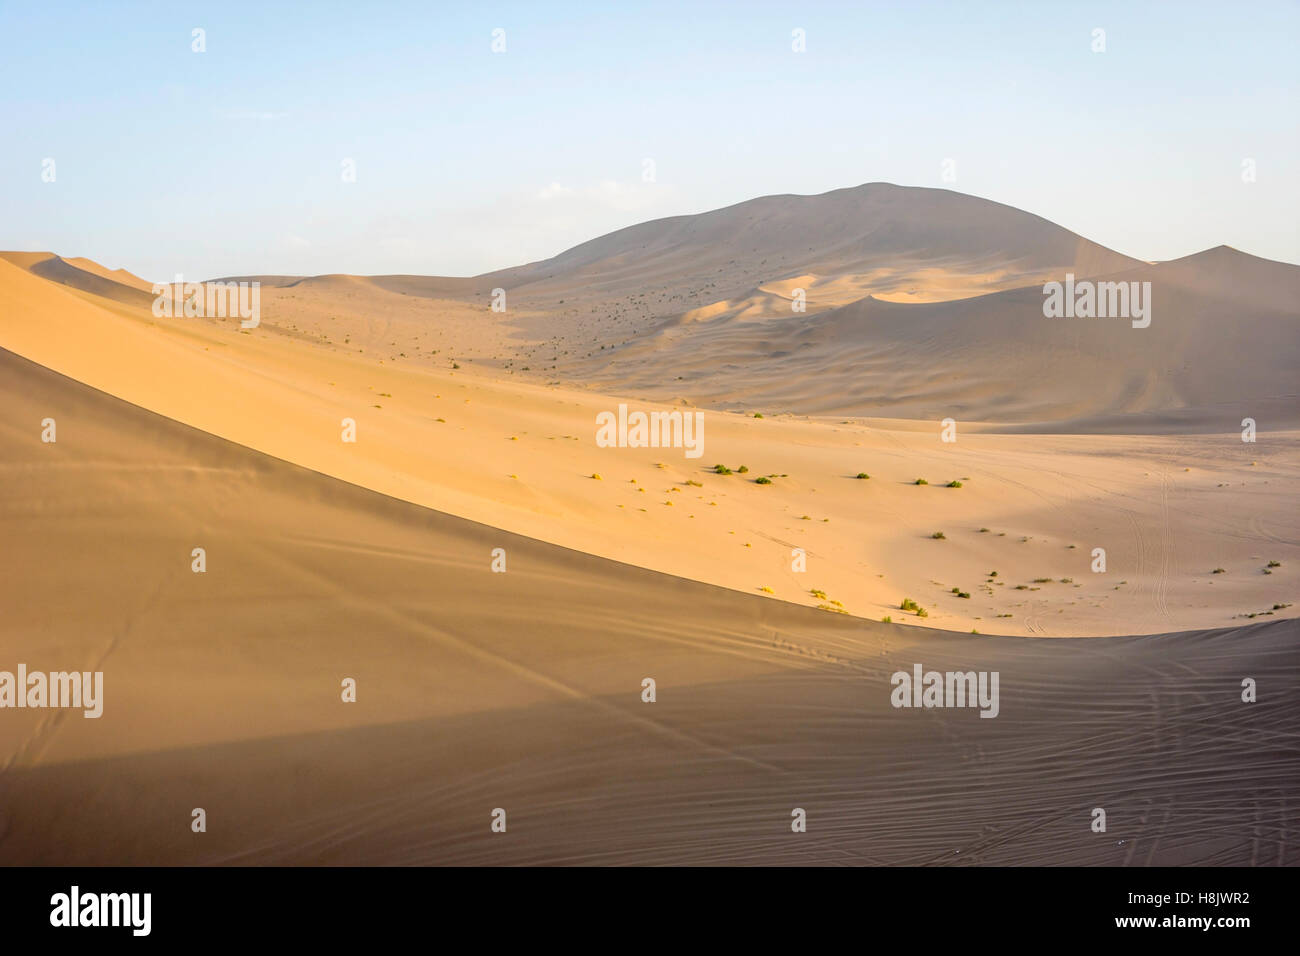 Colorful sand dunes in Gobi desert at sunset, Dunhuang, China - Stock Image